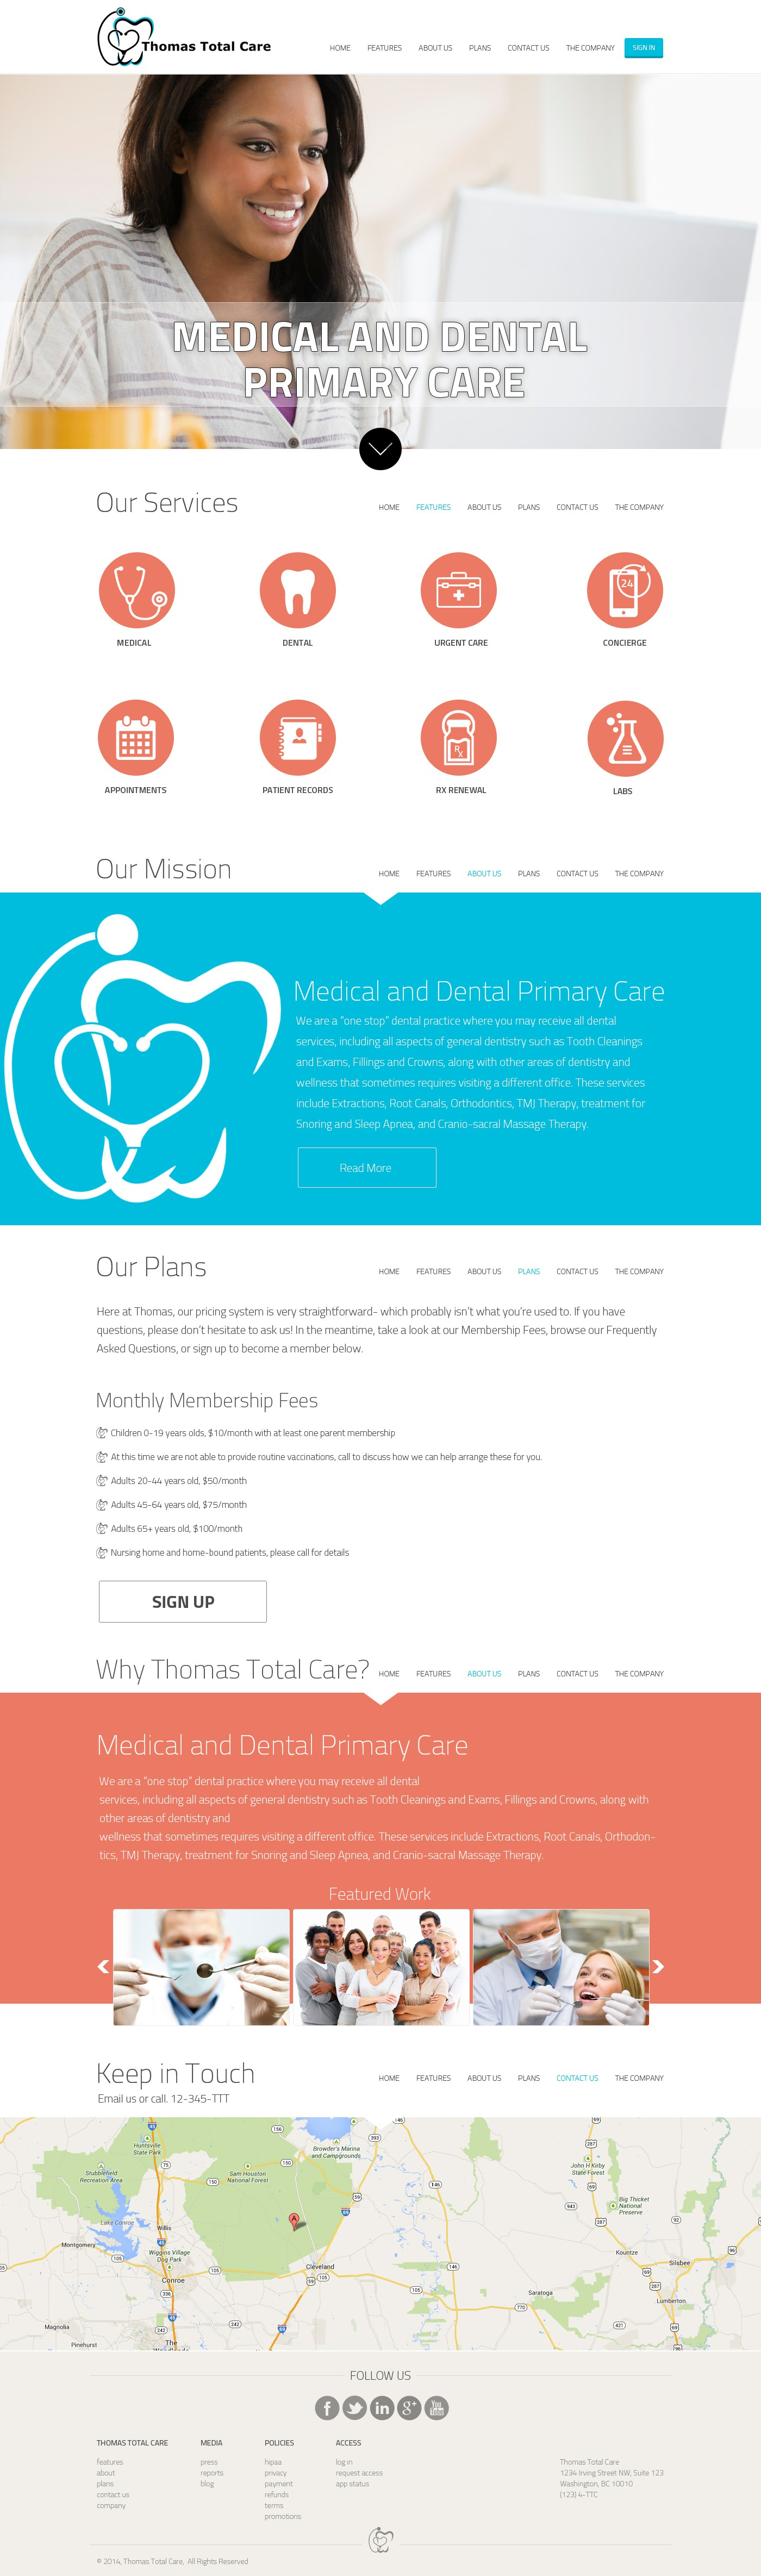 Healthcare innovation begins with you! Create a website for a combined medical and dental office.